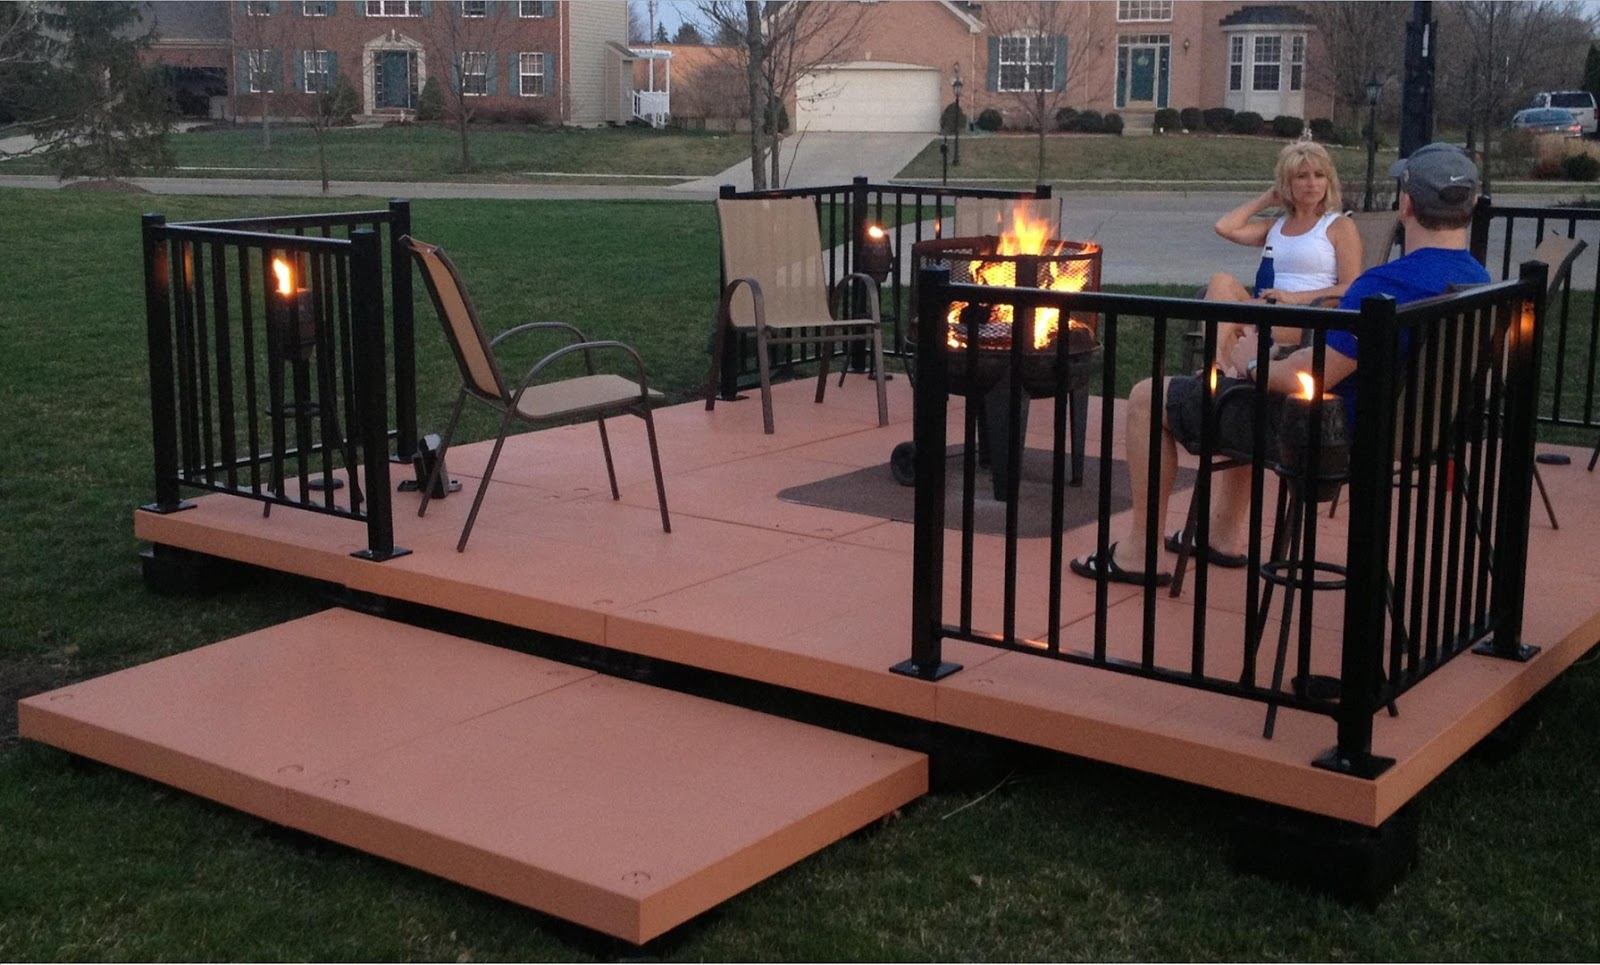 Lush fab glam blogazine outdoor living made fabulously for Simple outdoor decks